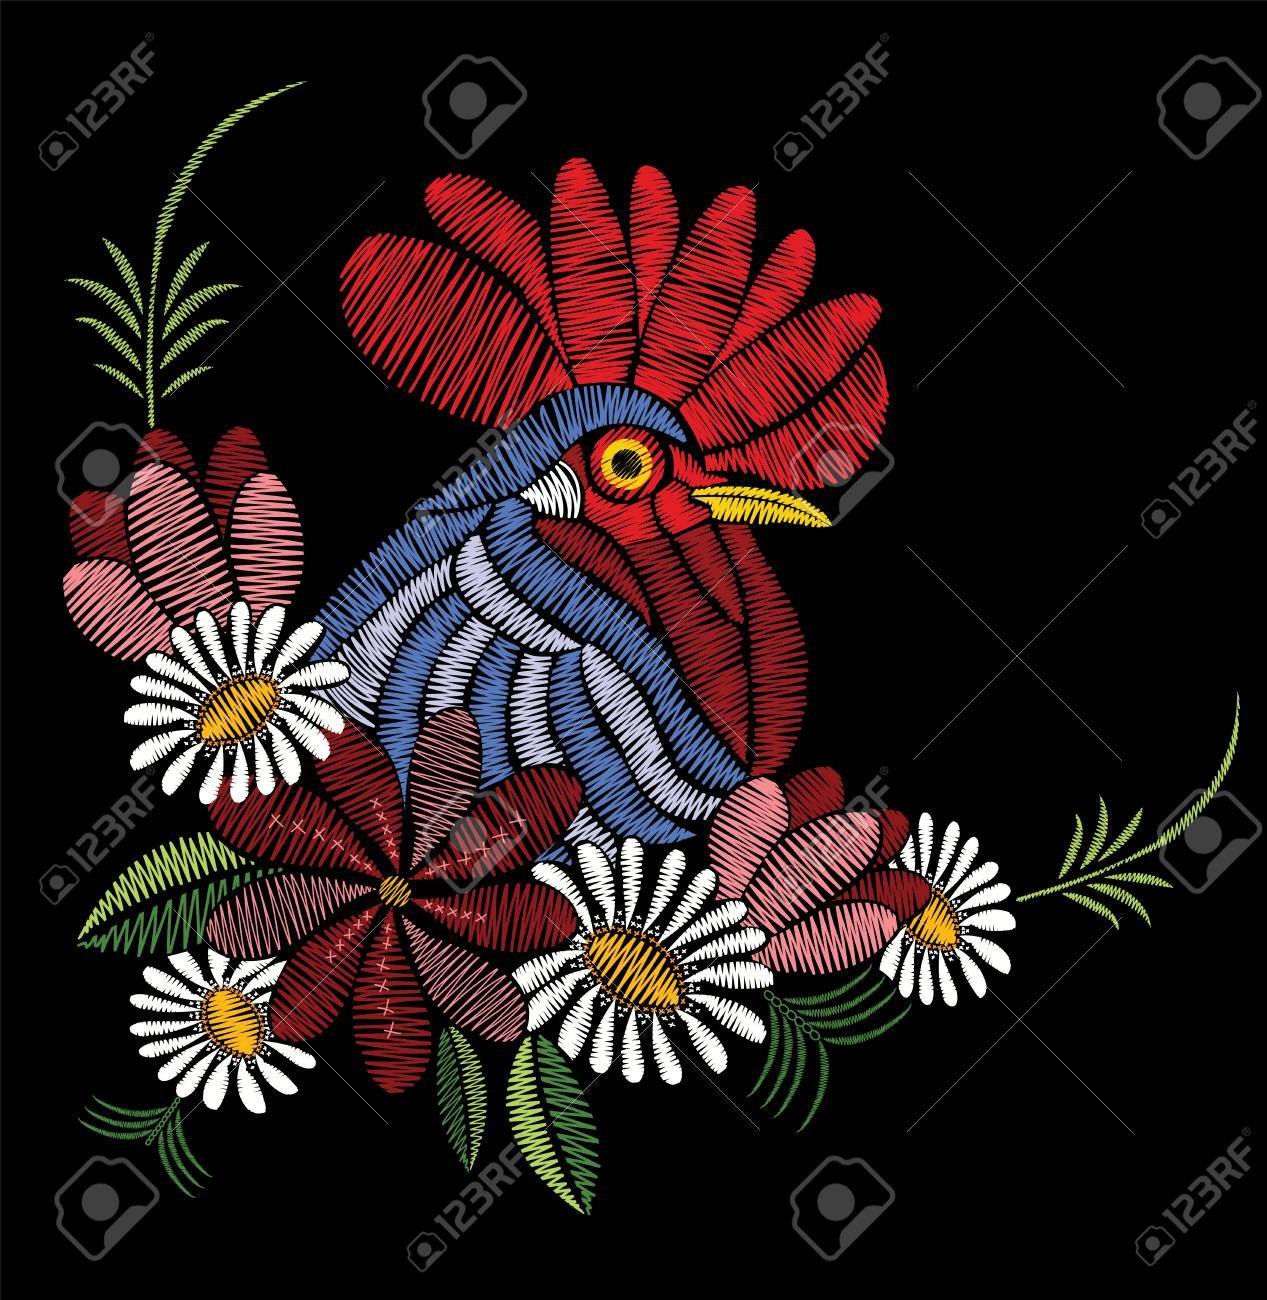 Embroidery stitches with rooster, wildflowers, chamomile, leaves. Vector floral ornament decoration on black background. Print for textile and fabric. - 80261266